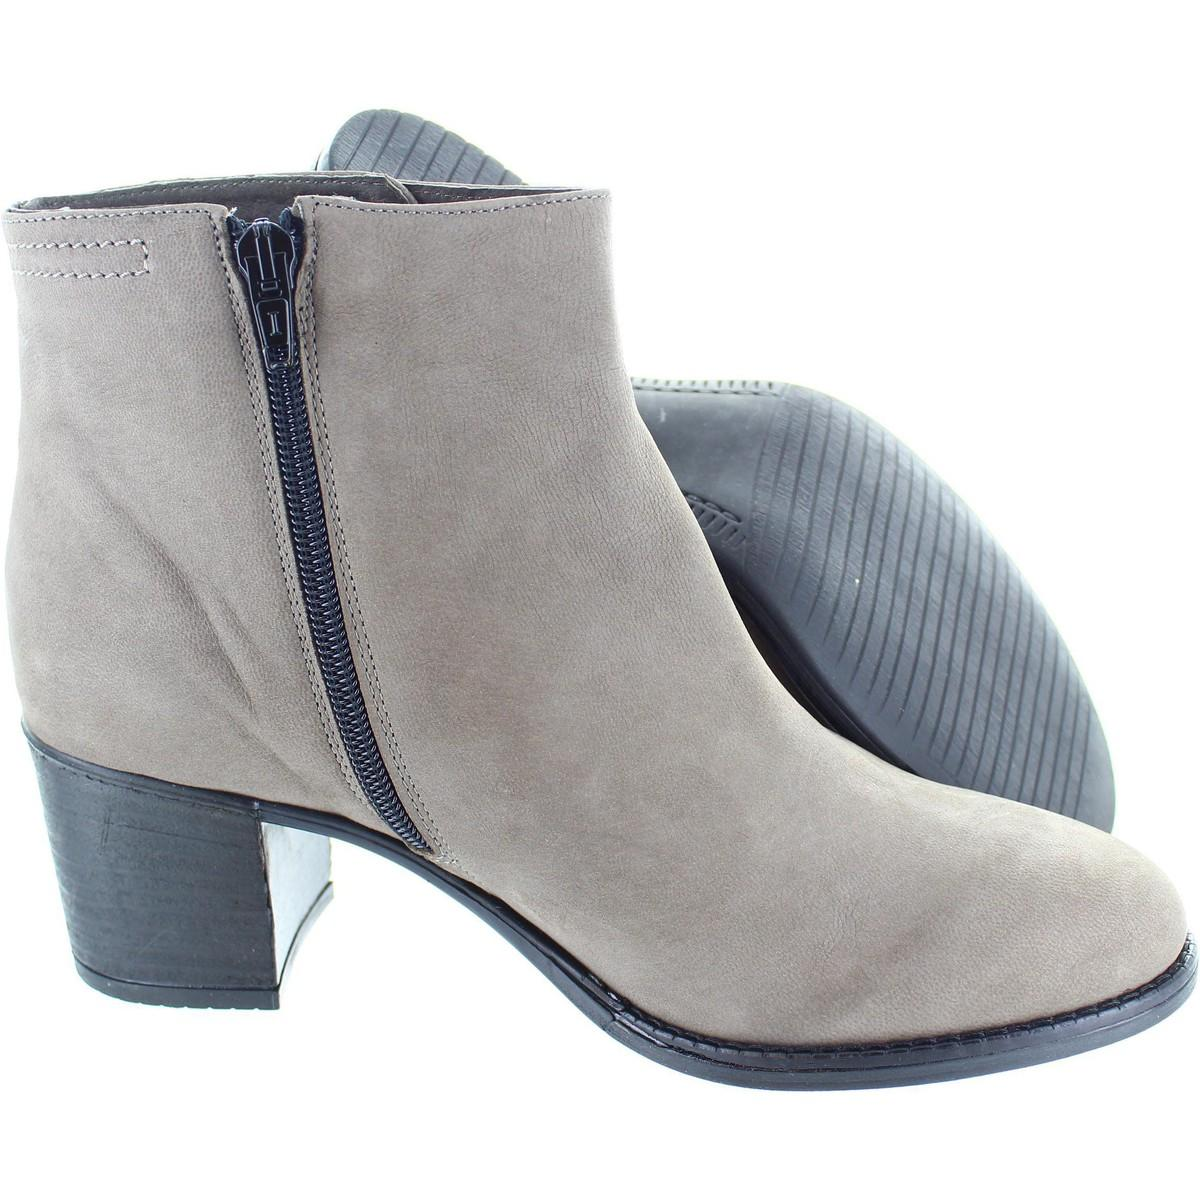 Cara London Leather Sensei Women's Low Ankle Boots In Grey in Grey